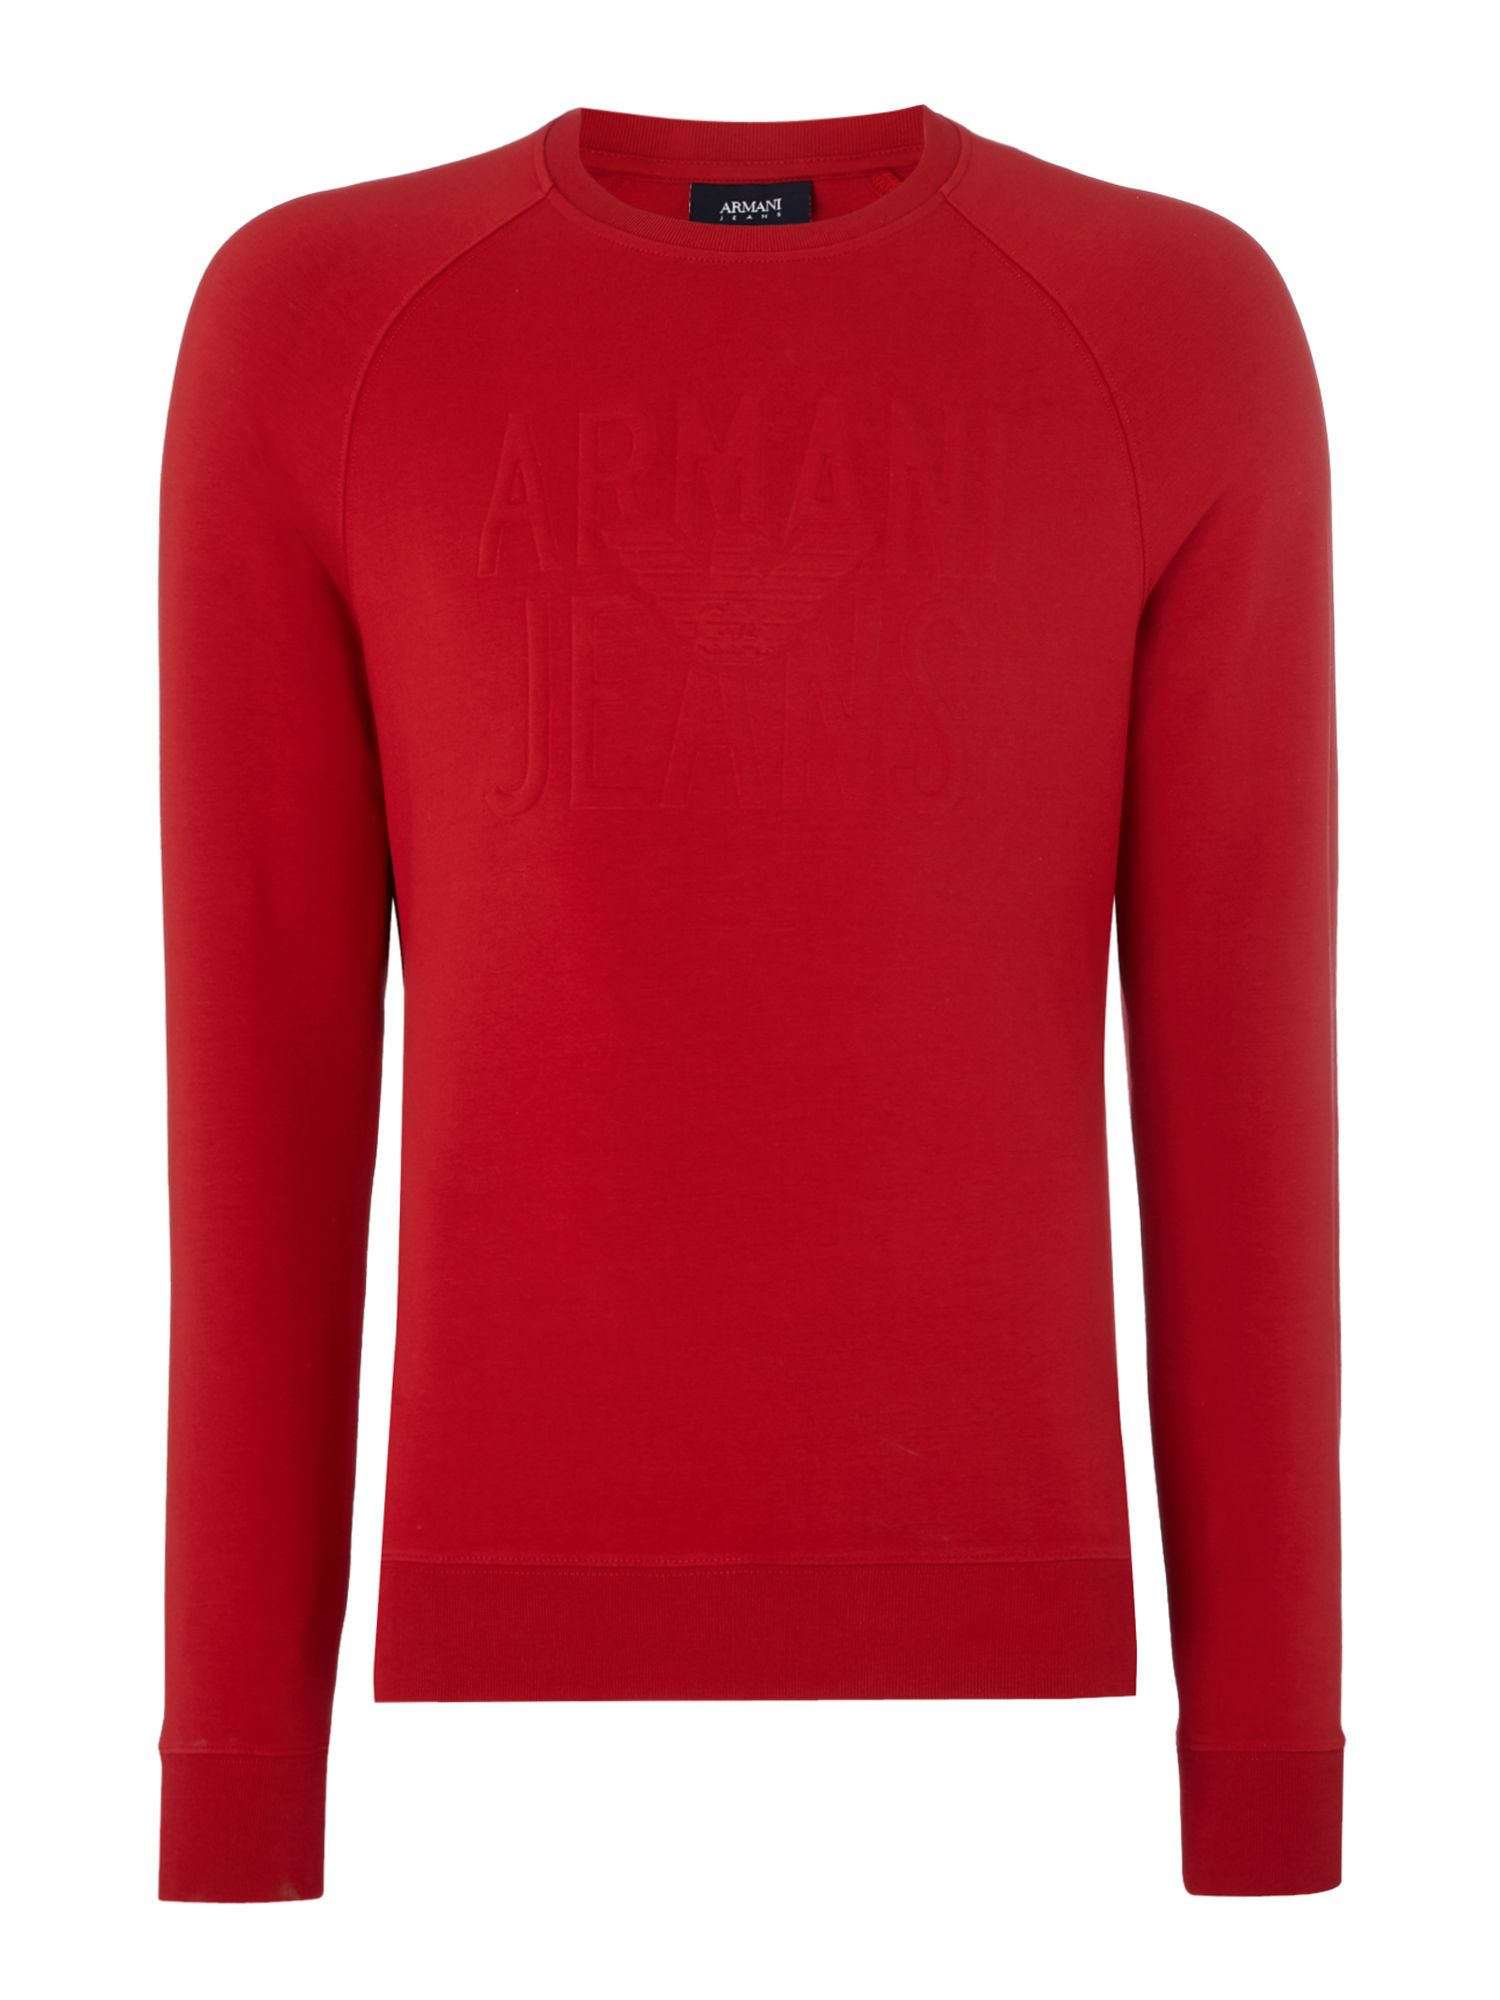 Men's Armani Jeans Embossed logo crew neck sweatshirt, Red